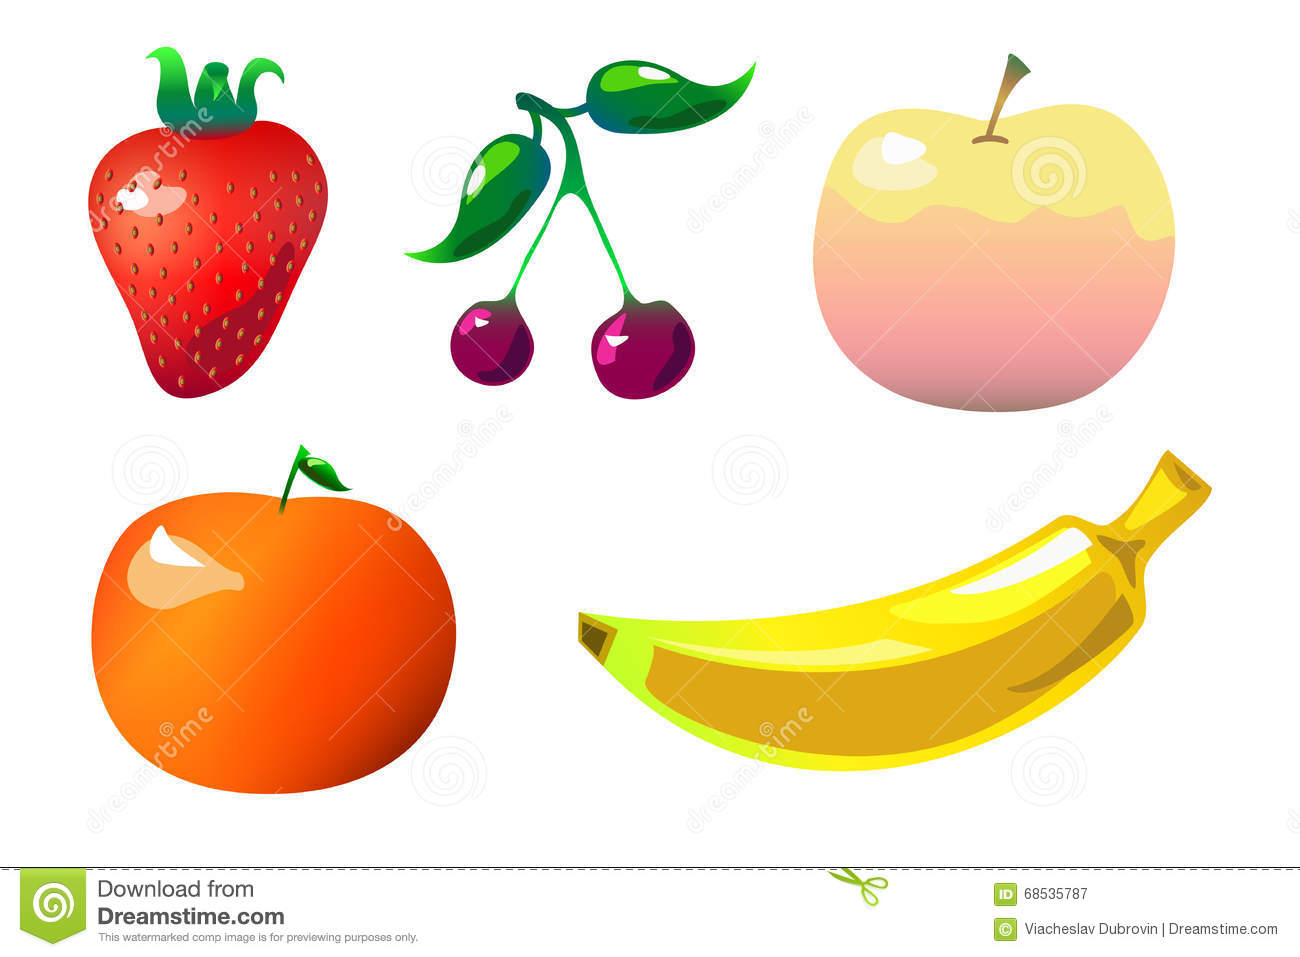 Colorful Fruits Clipart In Flat Comics Style On White Stock.